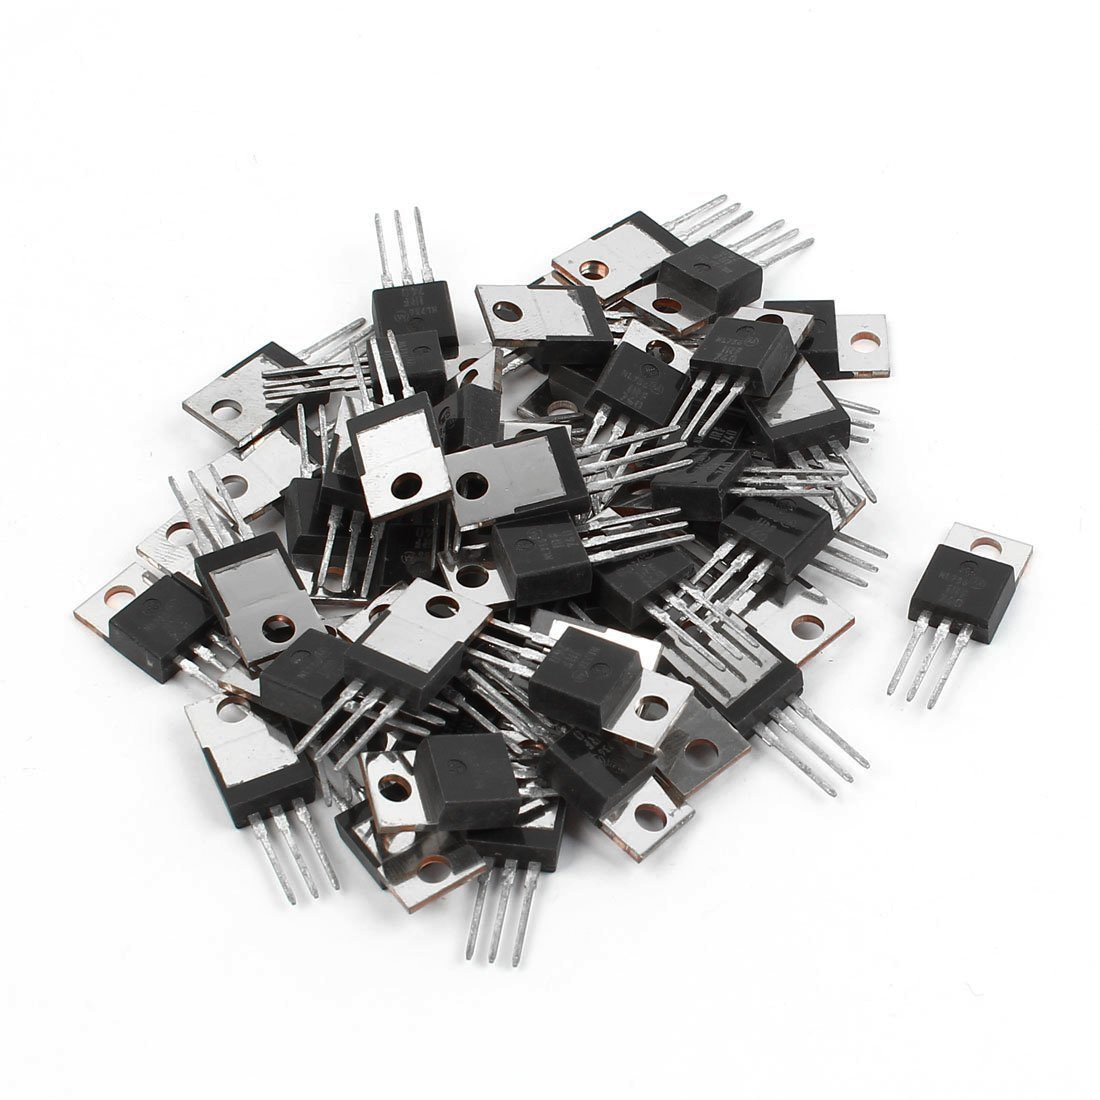 Power MOSFET - TOOGOO(R) 50 Pcs IRF740 TO-220 N-Channel Power MOSFET 400V 10A SPHAGT58539